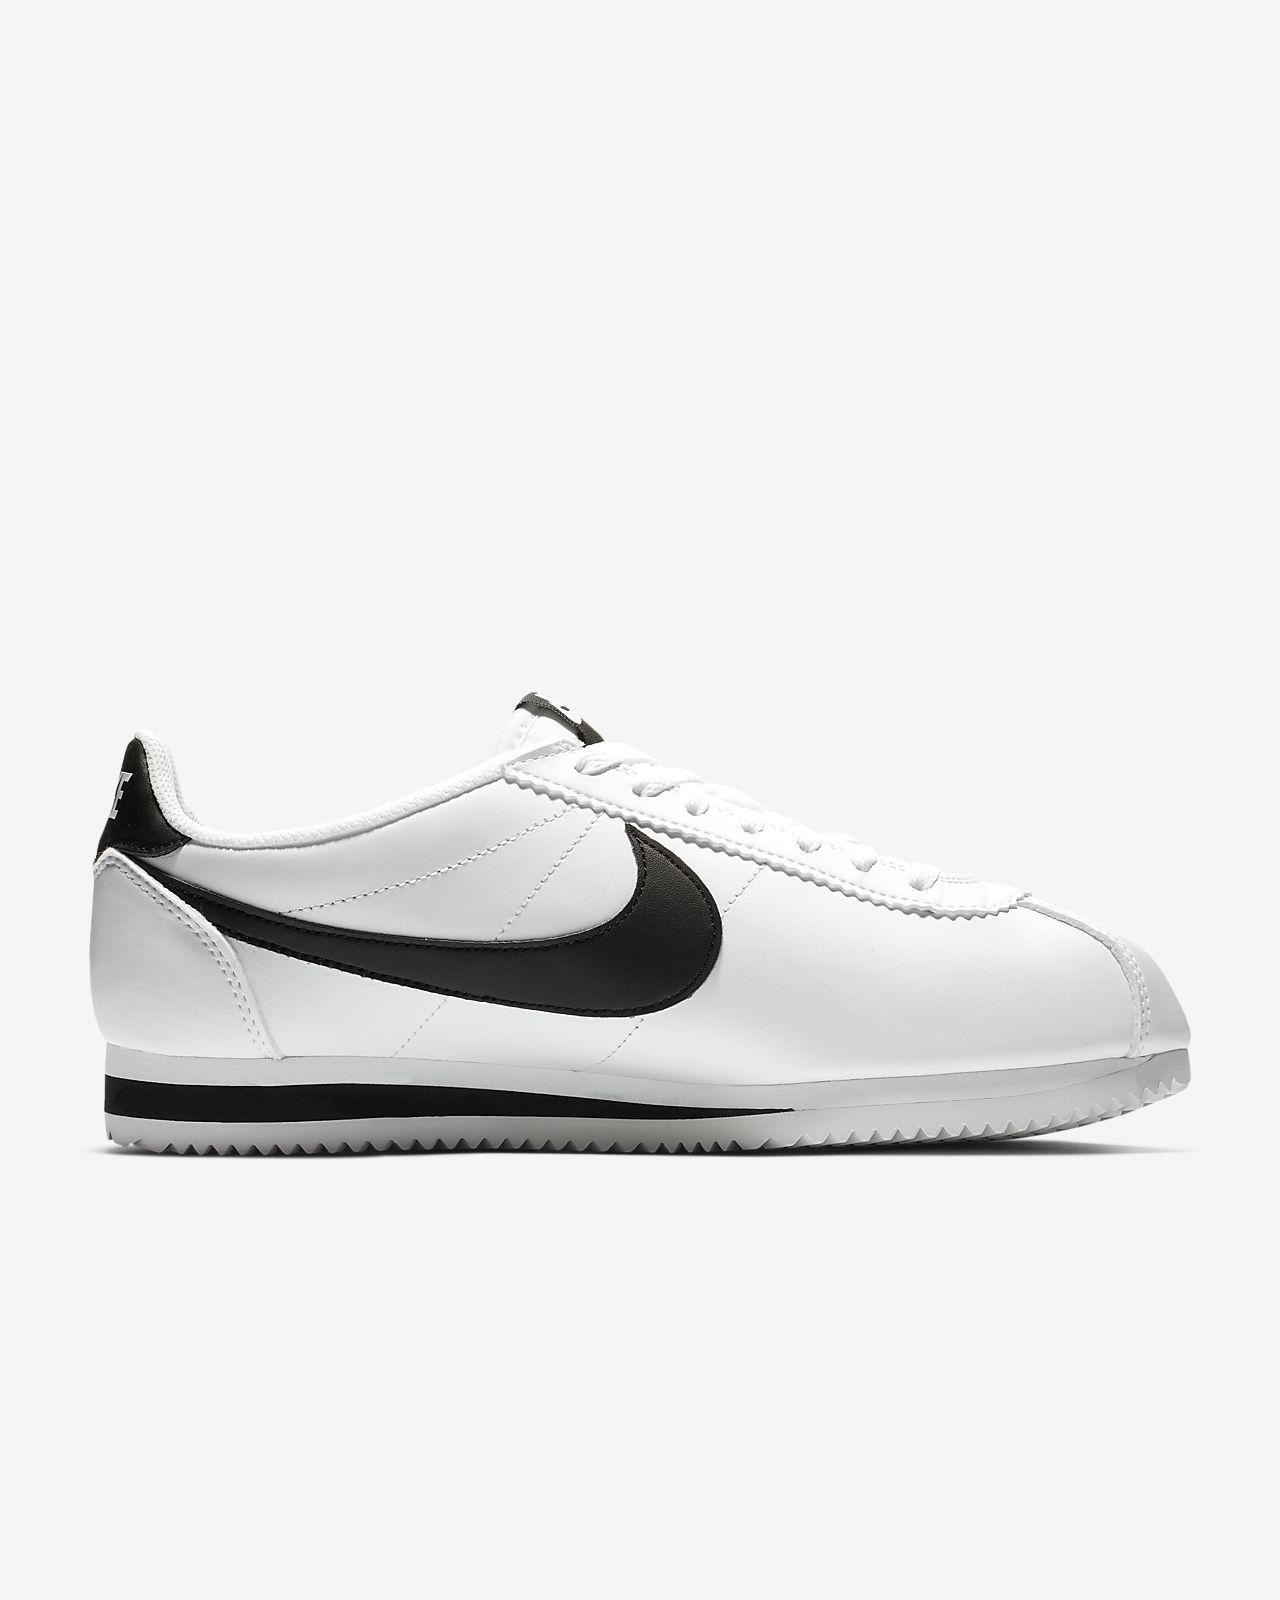 peso Dibuja una imagen Adjuntar a  comprar nike cortez flyknit mujer Online Shopping for Women, Men, Kids  Fashion & Lifestyle|Free Delivery & Returns